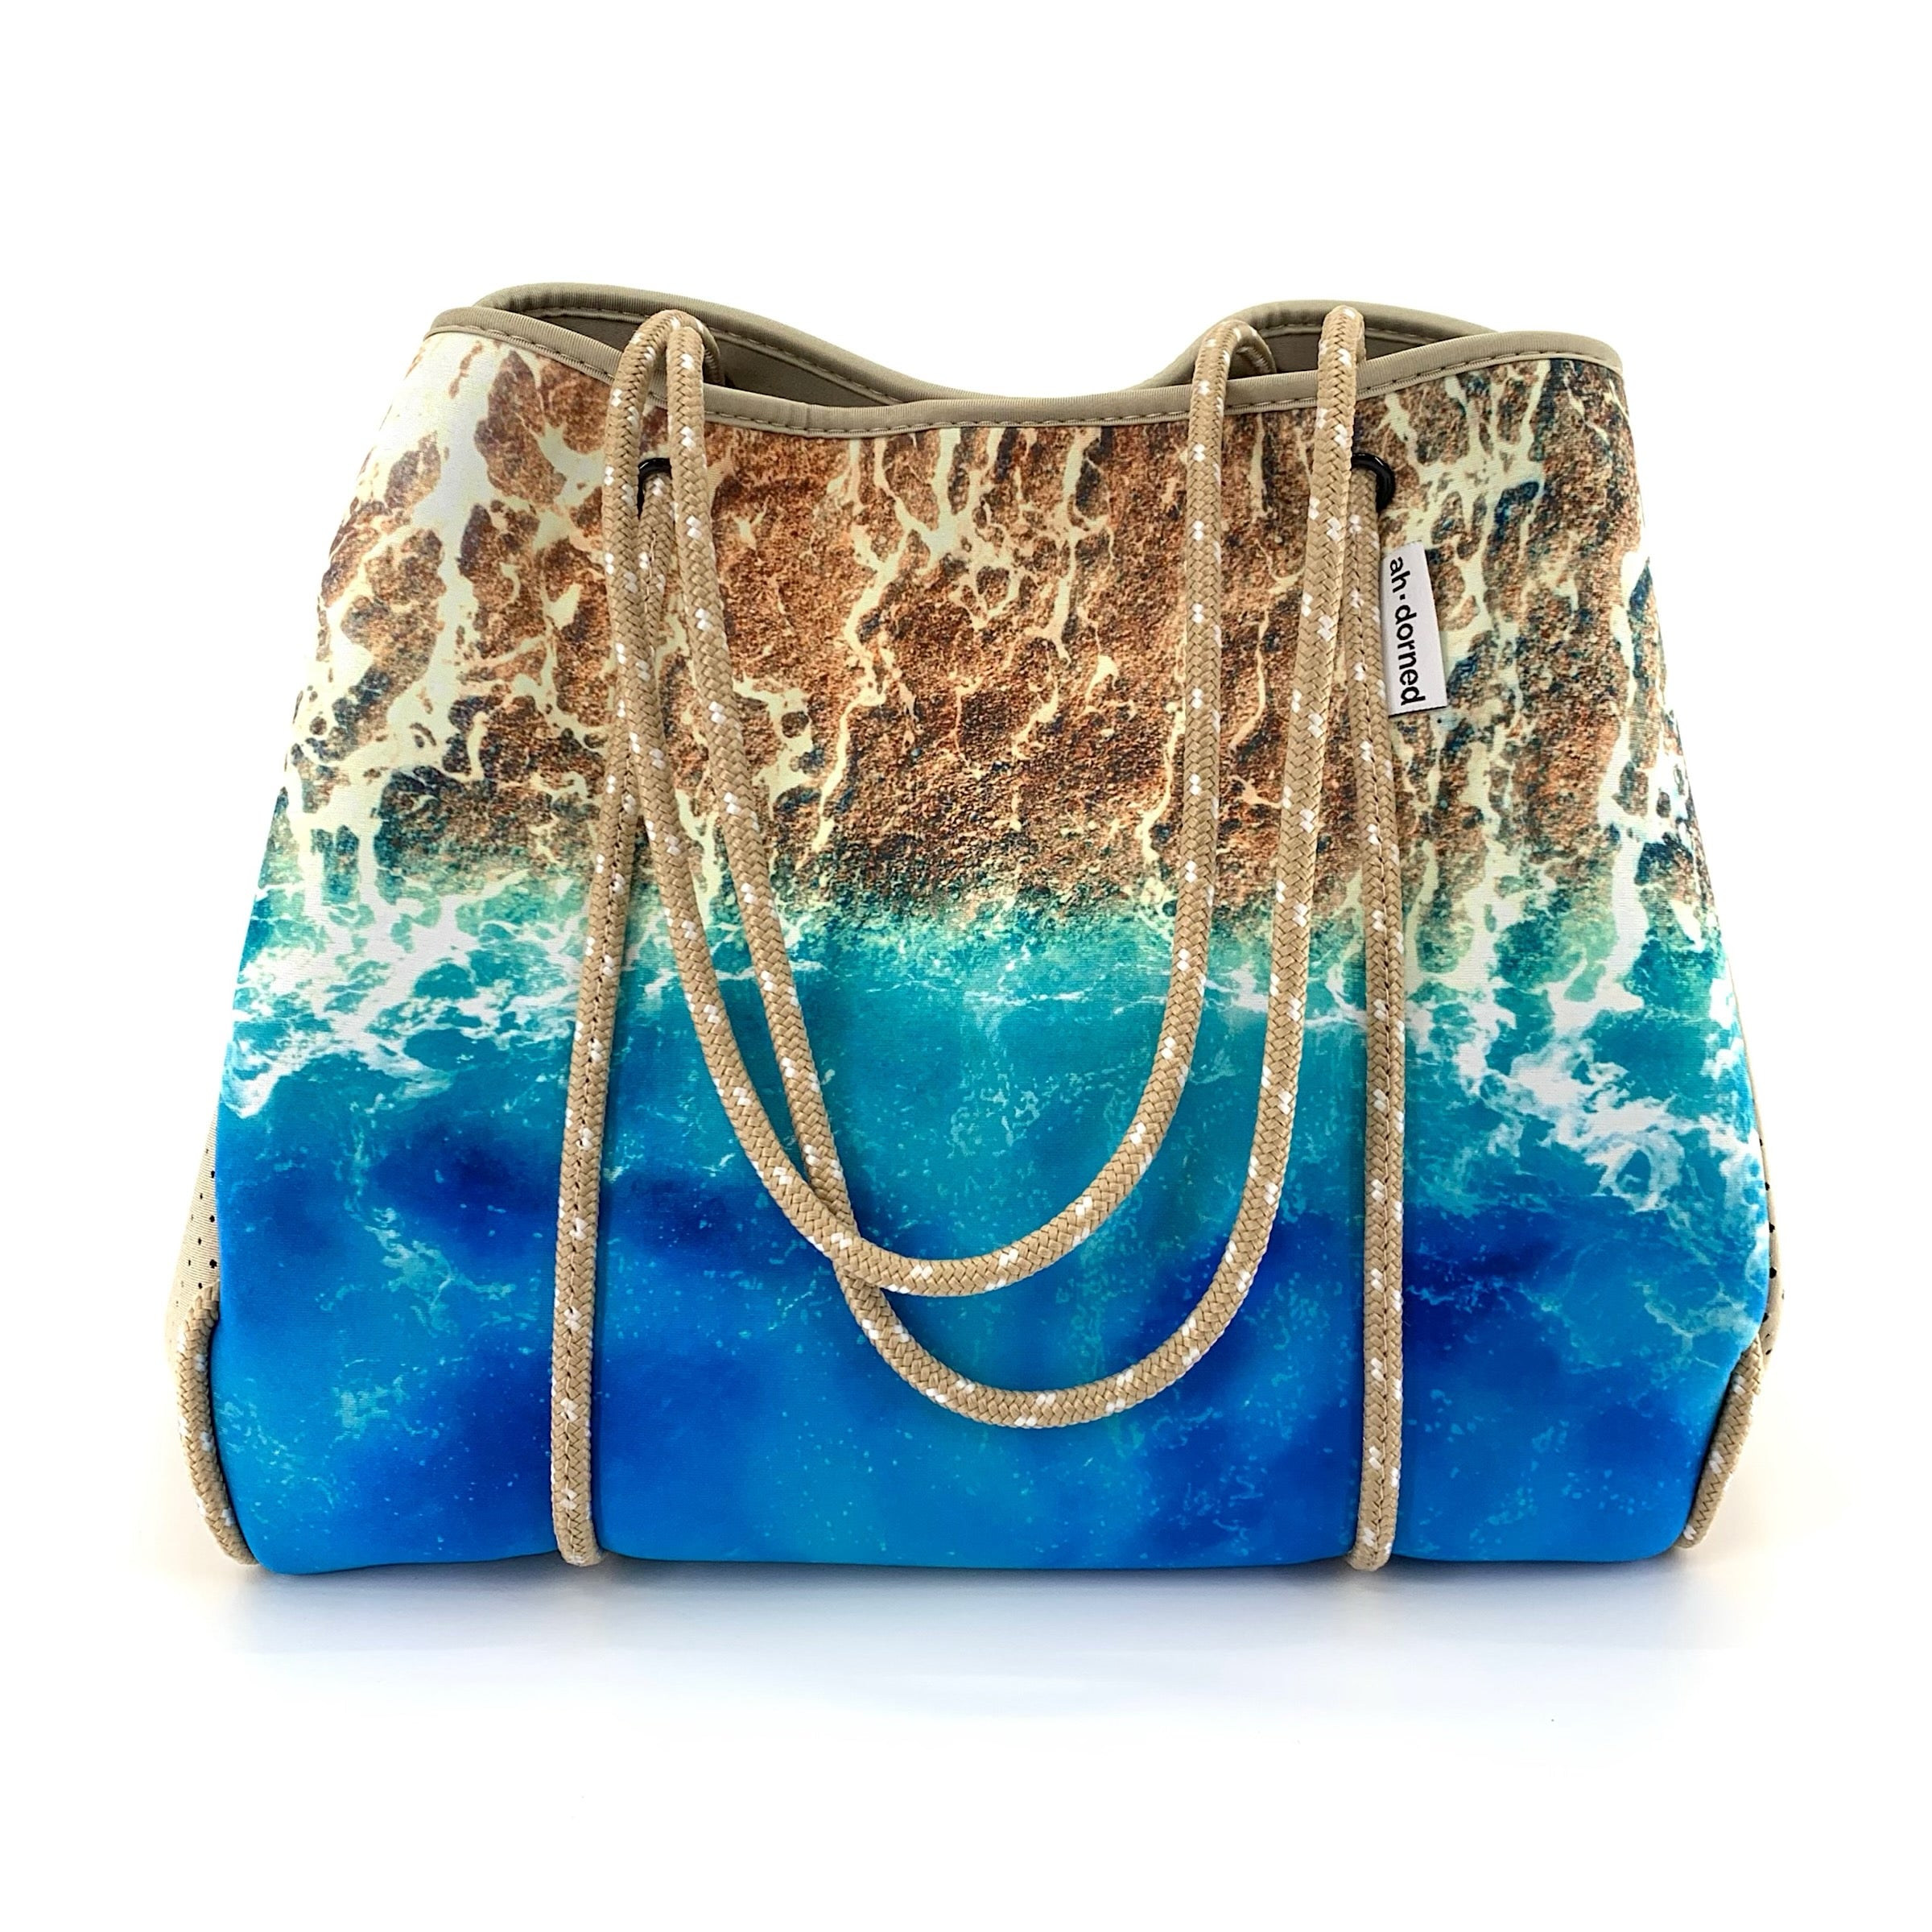 "N101BSAND  - The Ocean and Beach Aerial View Scene Neoprene Tote in Camel by Ahdorned. Ultra lightweight waterproof neoprene tote with removable bottom liner and zip front coin purse/pouch. Measures 18"" H x 12"" W x 10"" D."